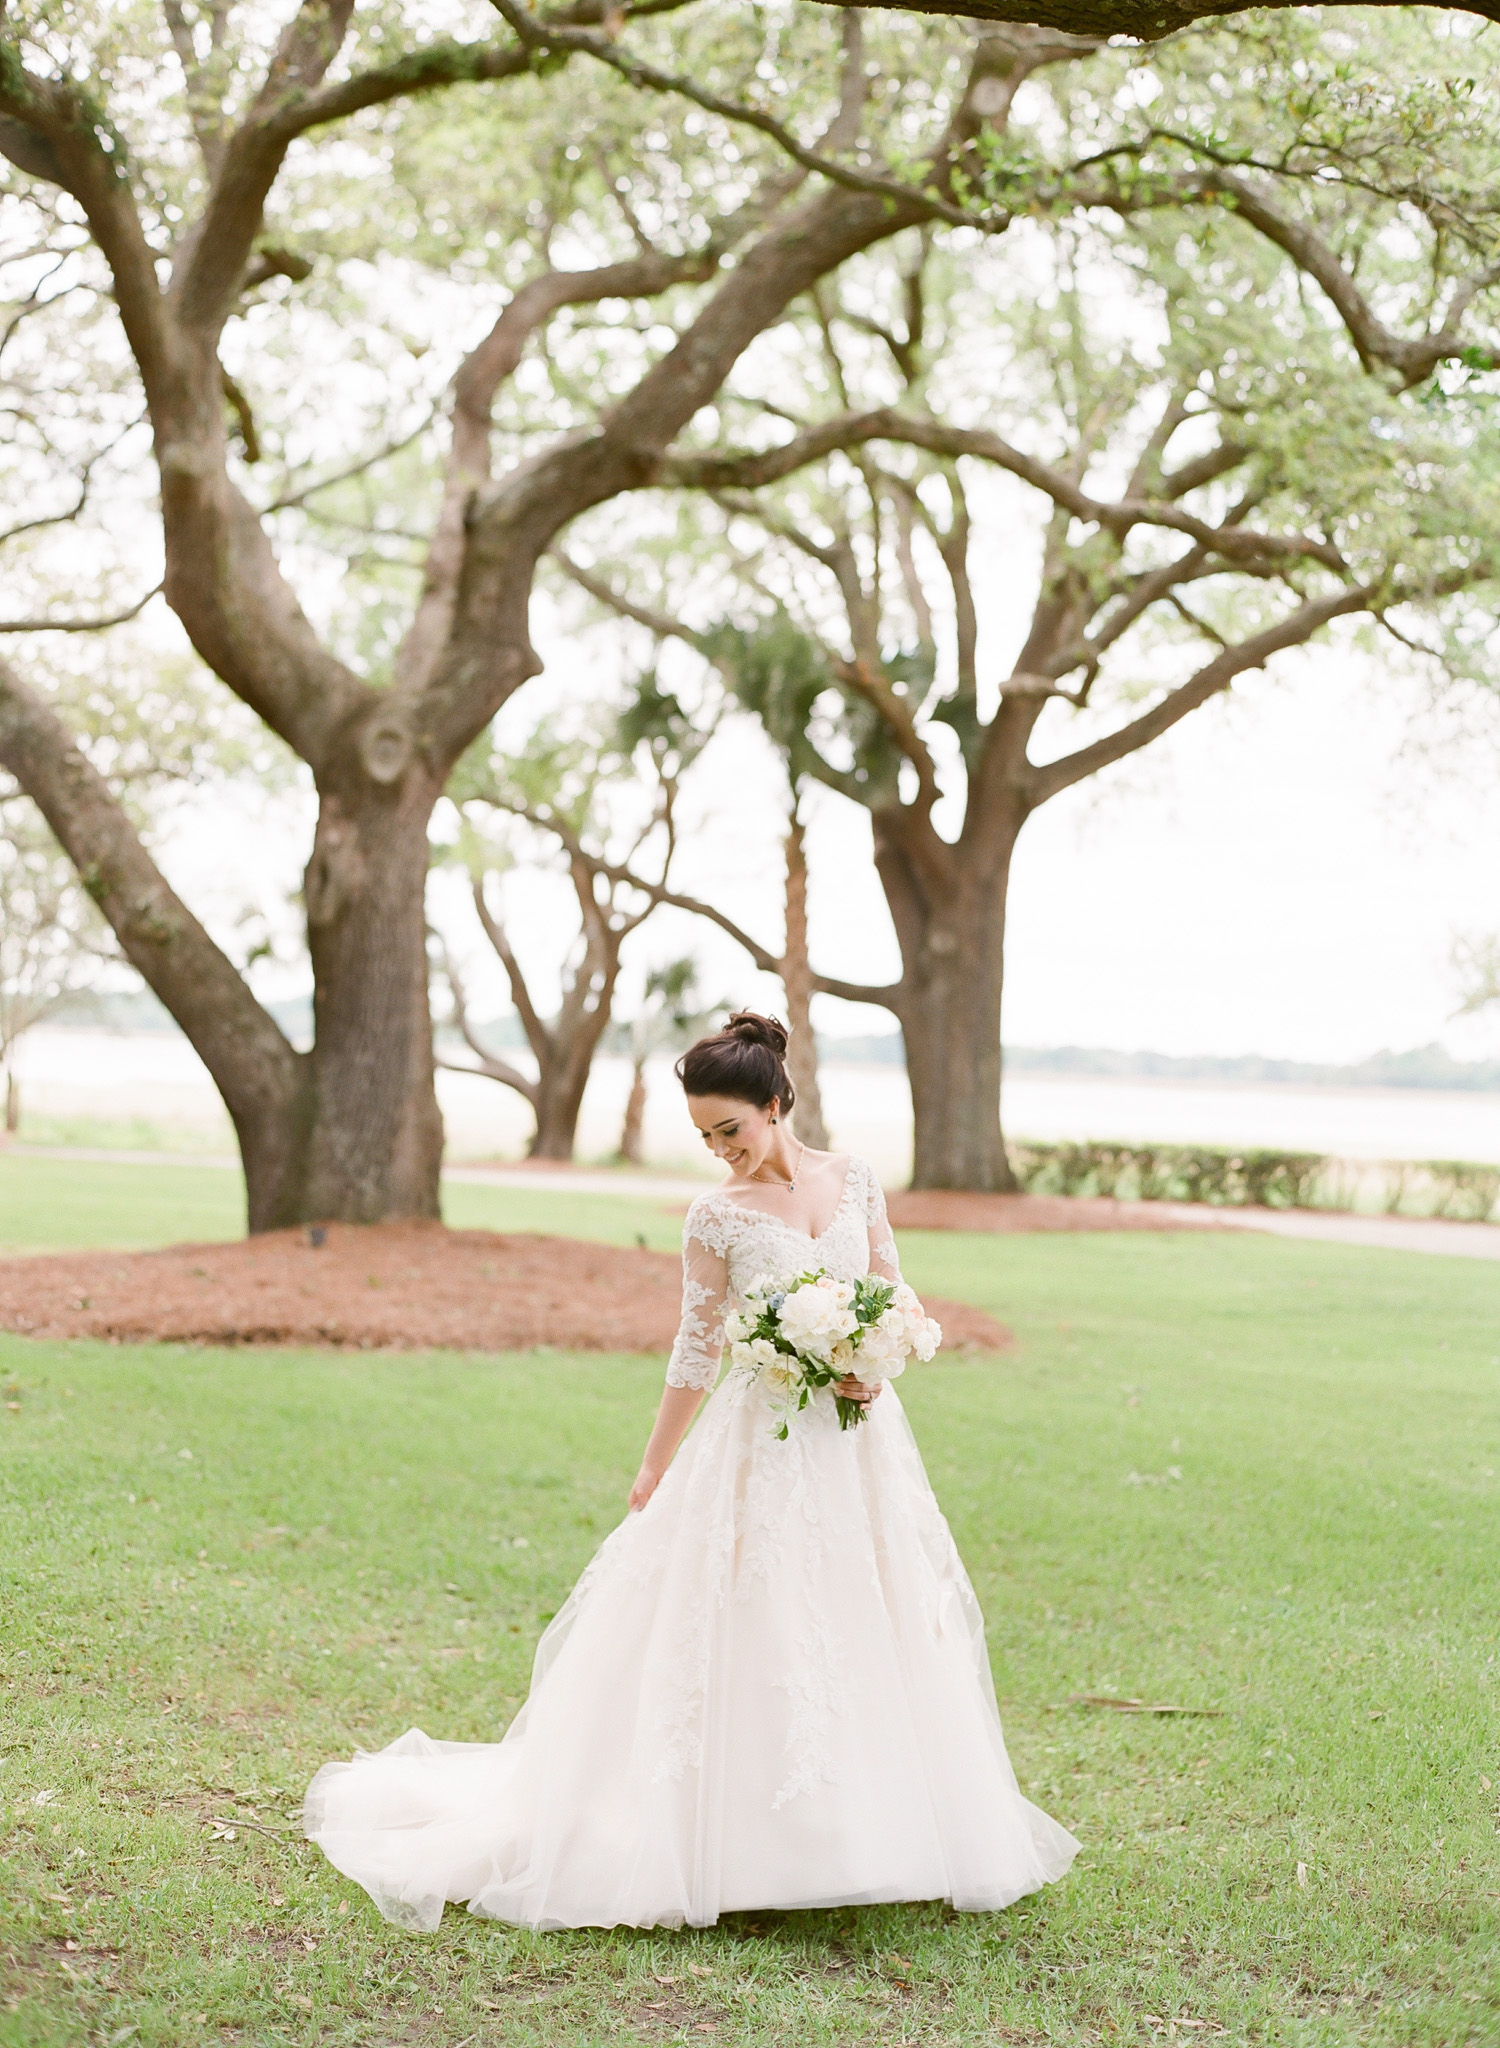 Charleston-Lowndes-Grove-Wedding-PPHG-30.jpg